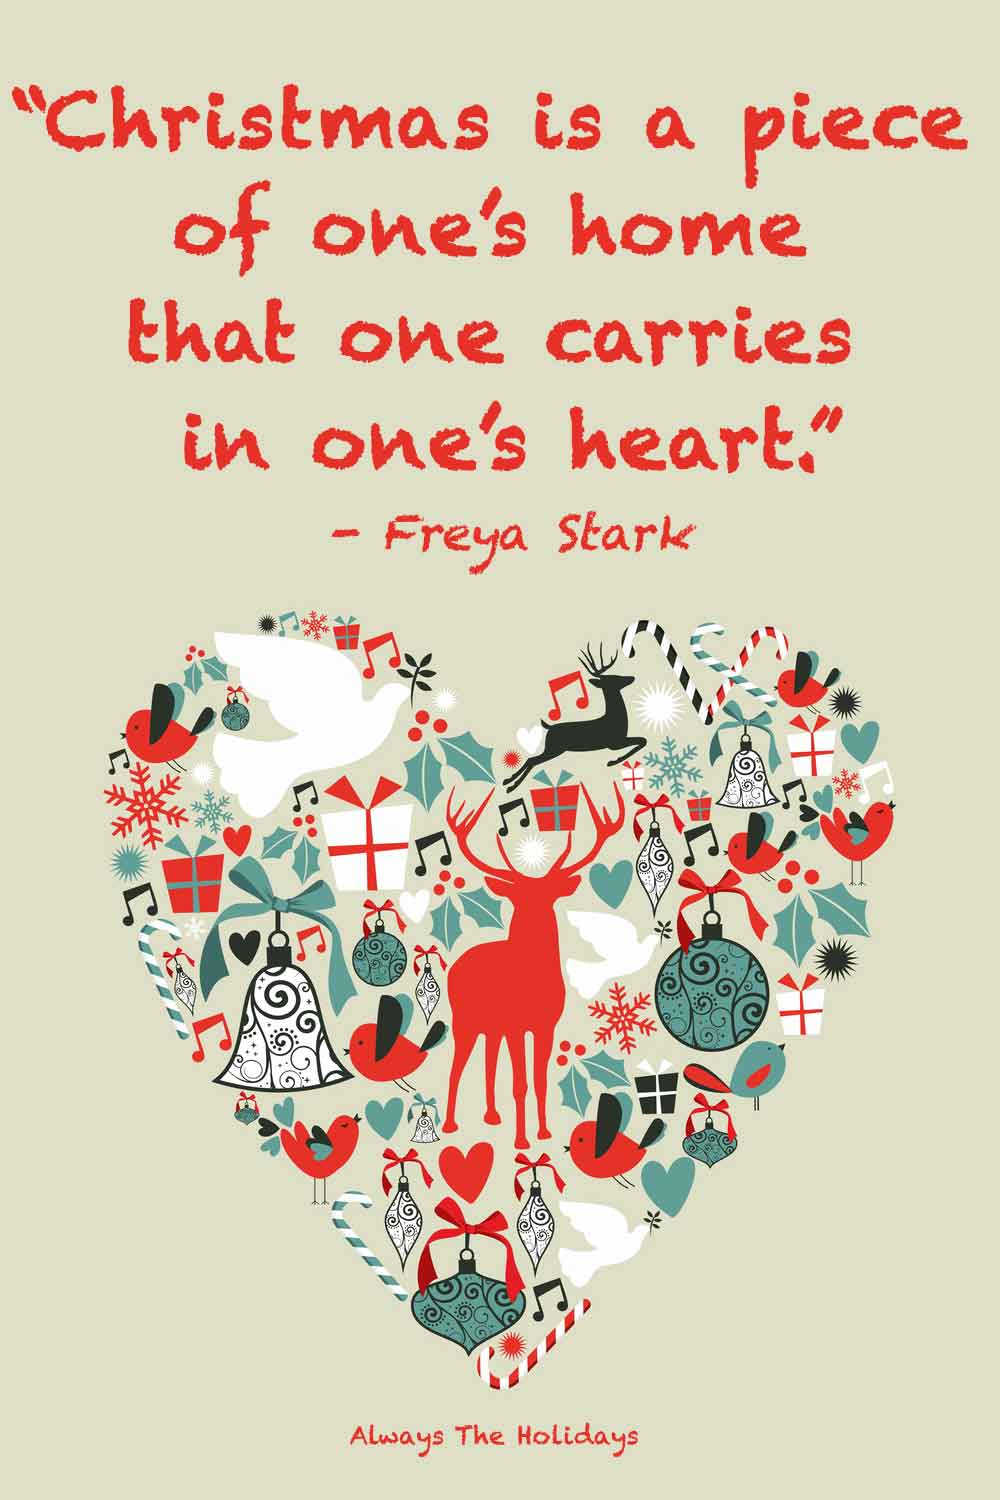 A heart filled with Christmas themed things, with a childhood Christmas quotes text overlay on top.